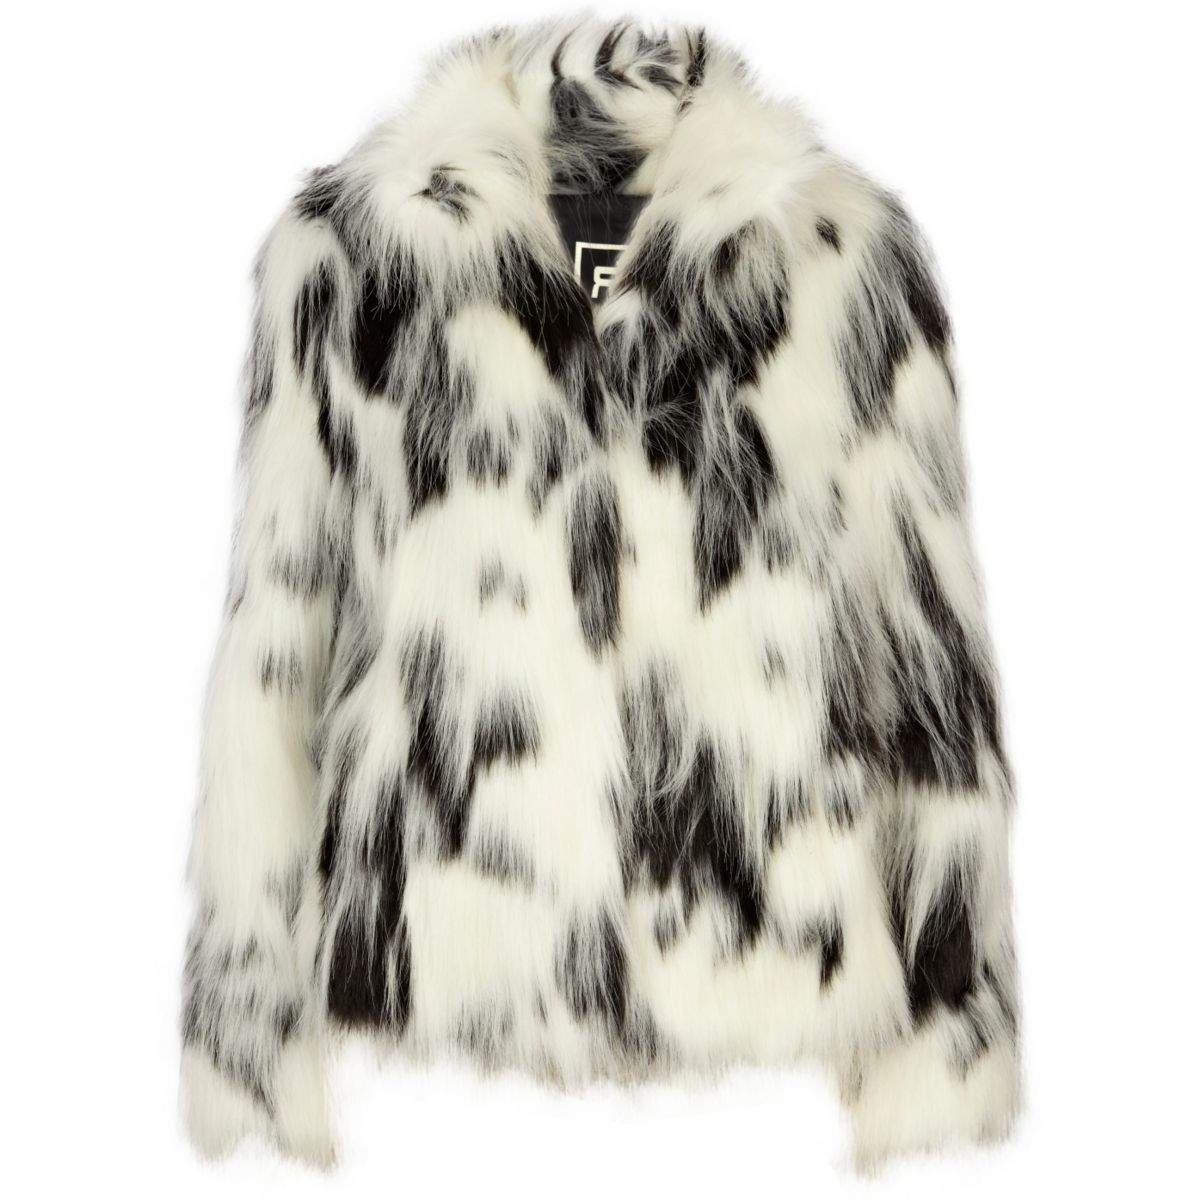 Faux Fur Coats: Stay warm with our great selection of Women's coats from teraisompcz8d.ga Your Online Women's Outerwear Store! Get 5% in rewards with Club O! Coupon Activated! Overstock Anniversary Sale* Save on decor. Spooky Savings Event. Up to 70% off. Cozy Home Event* Up to 35% off.